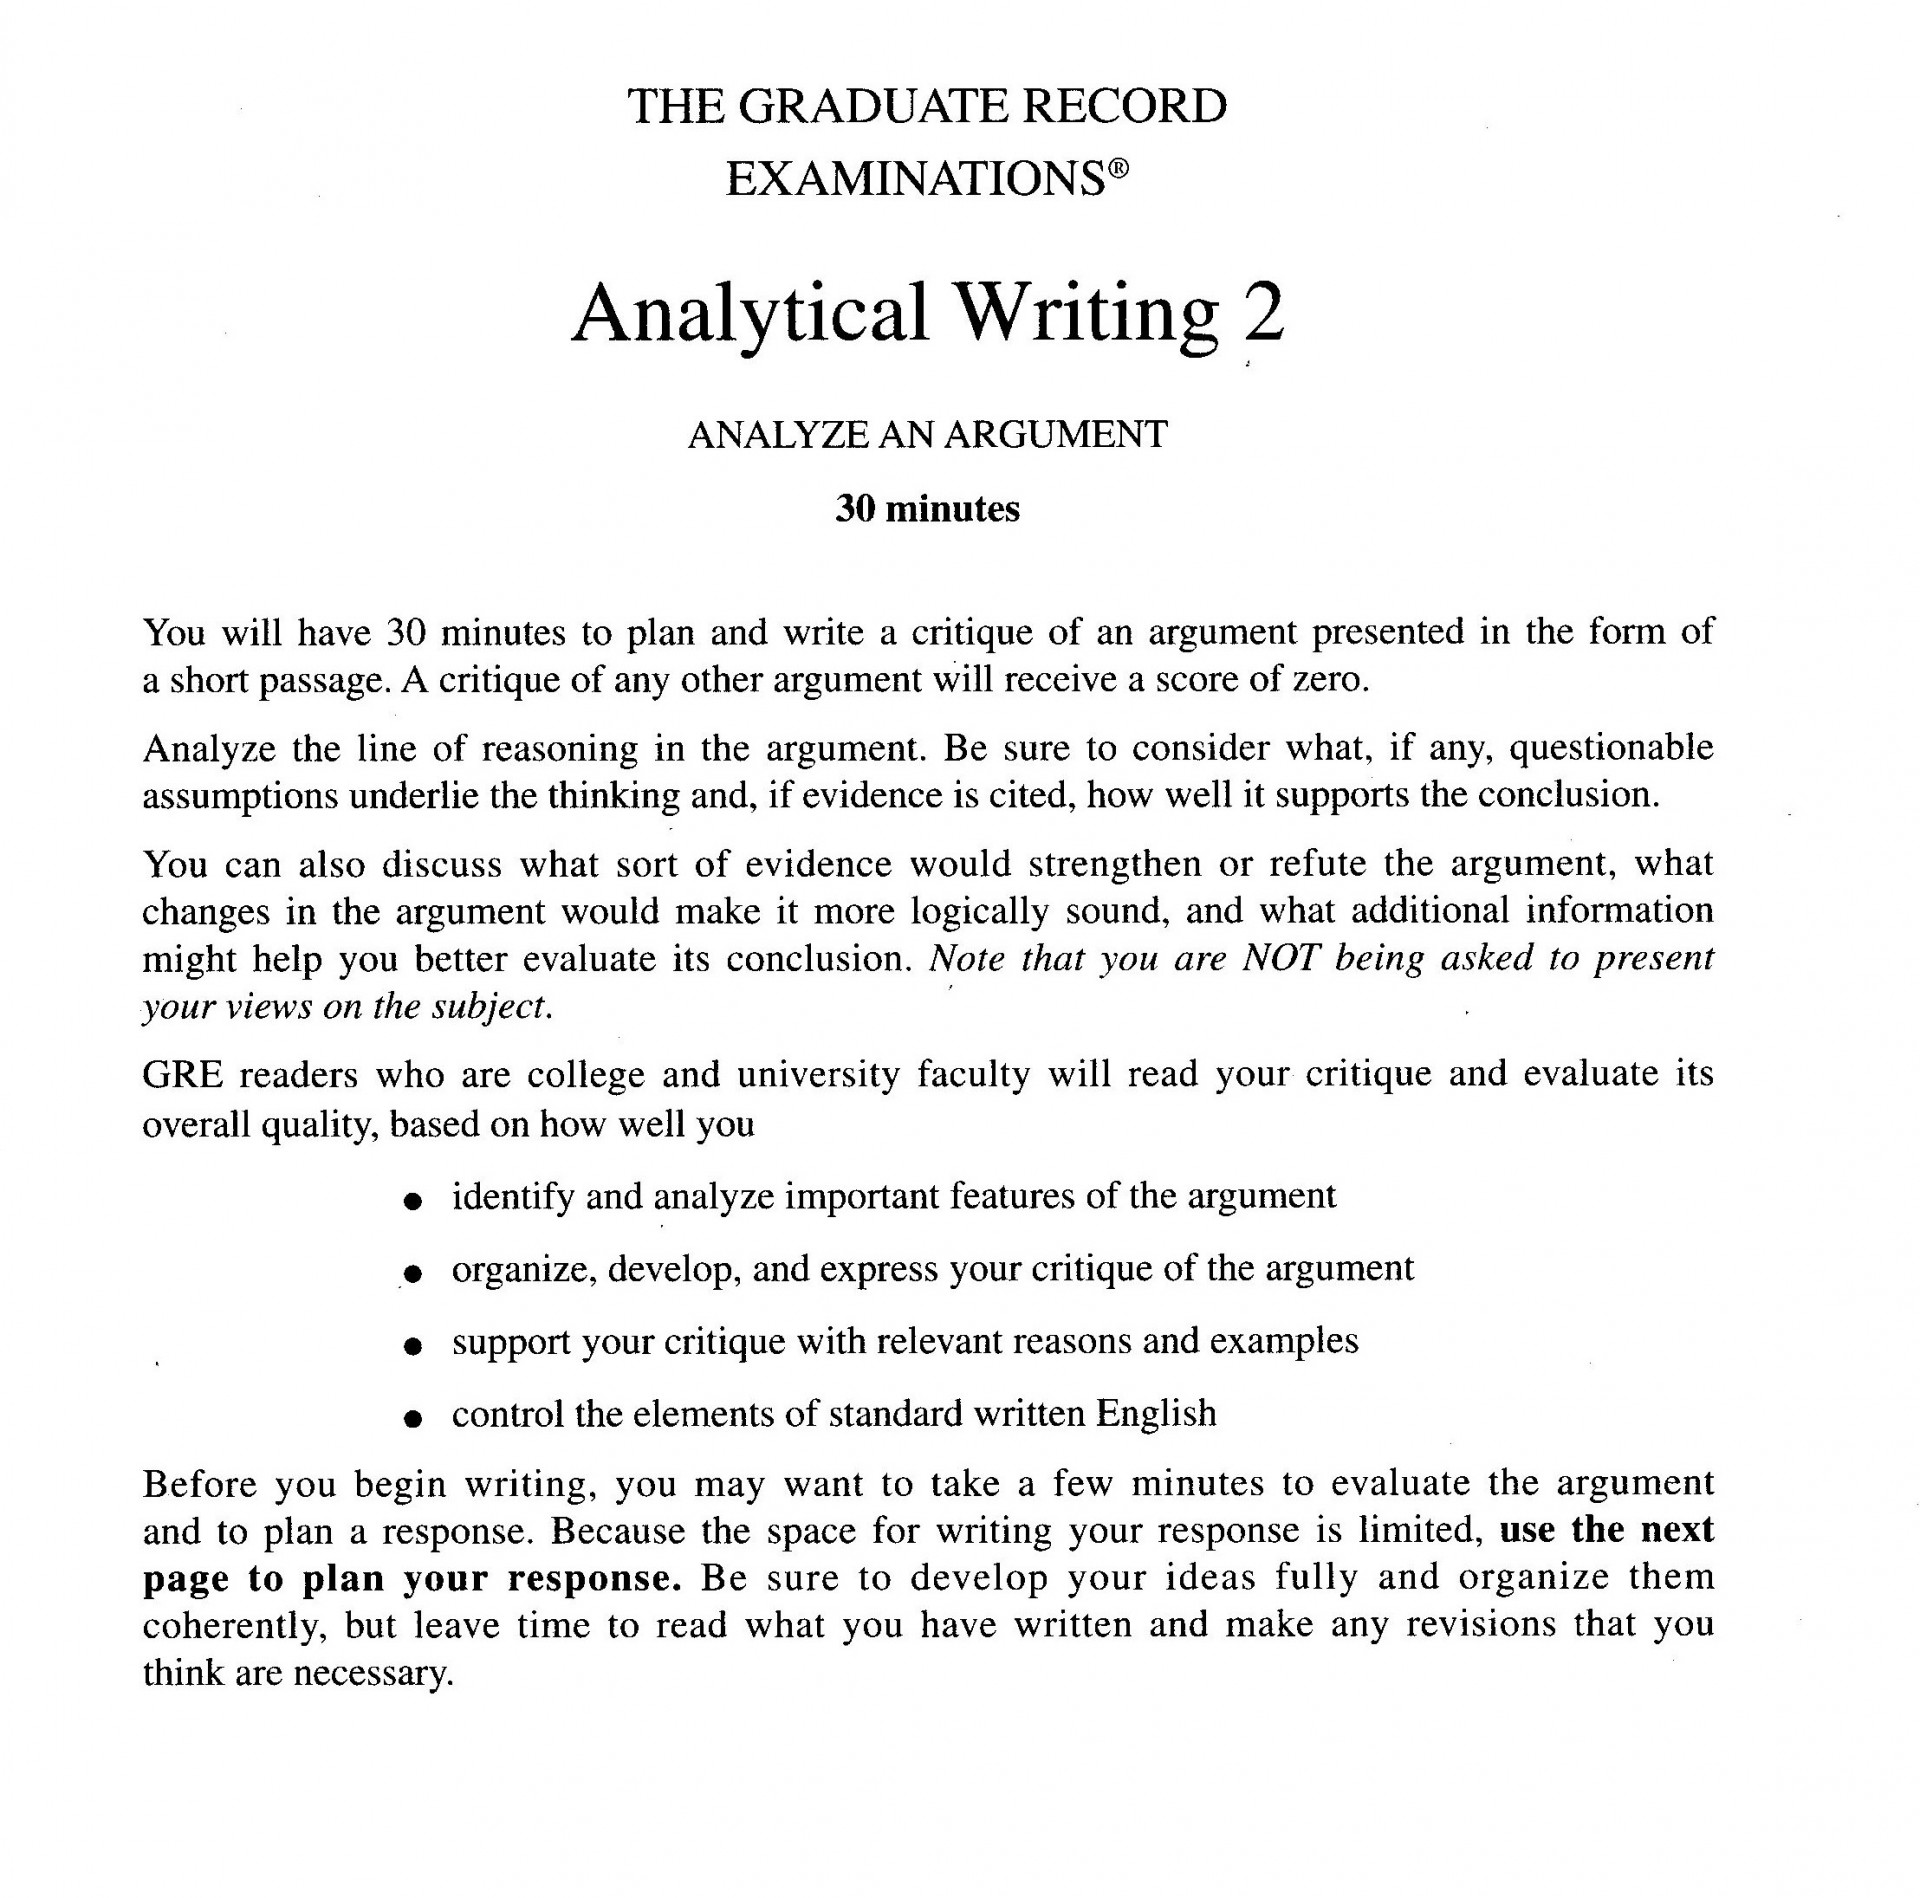 018 Gre Argument Essays Analytical20writing20response20task20directions20for20gre201 Unusual Essay Examples Sample Questions Analytical Writing Samples 1920